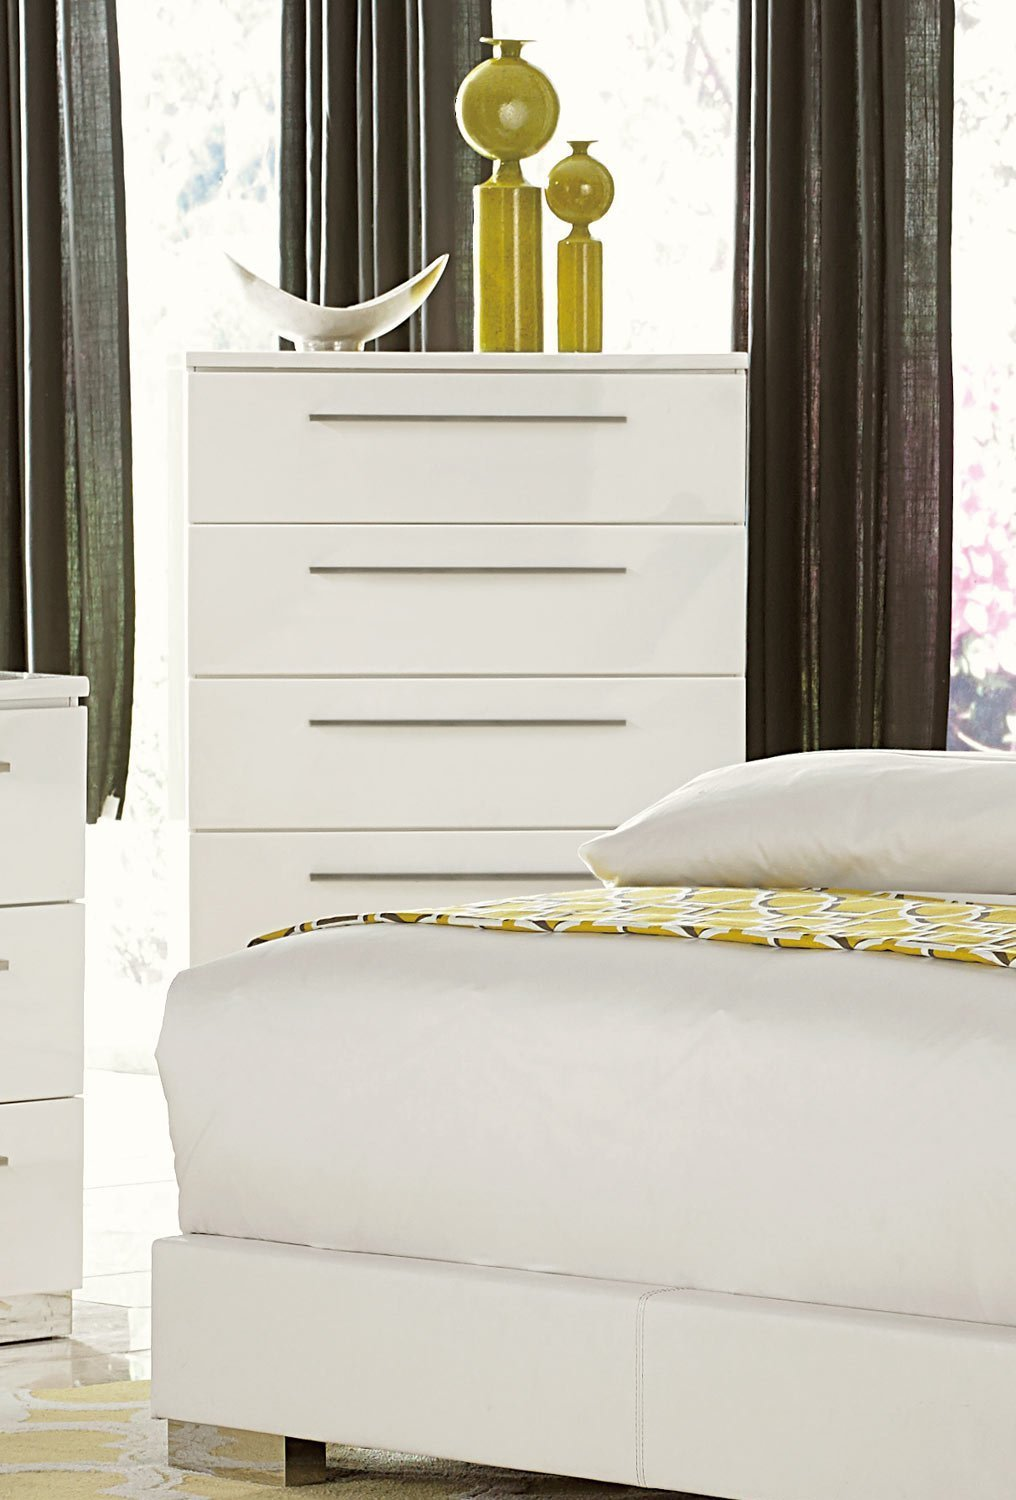 Lisle 5 Drawer Tall Chest in White High Gloss Lacquer